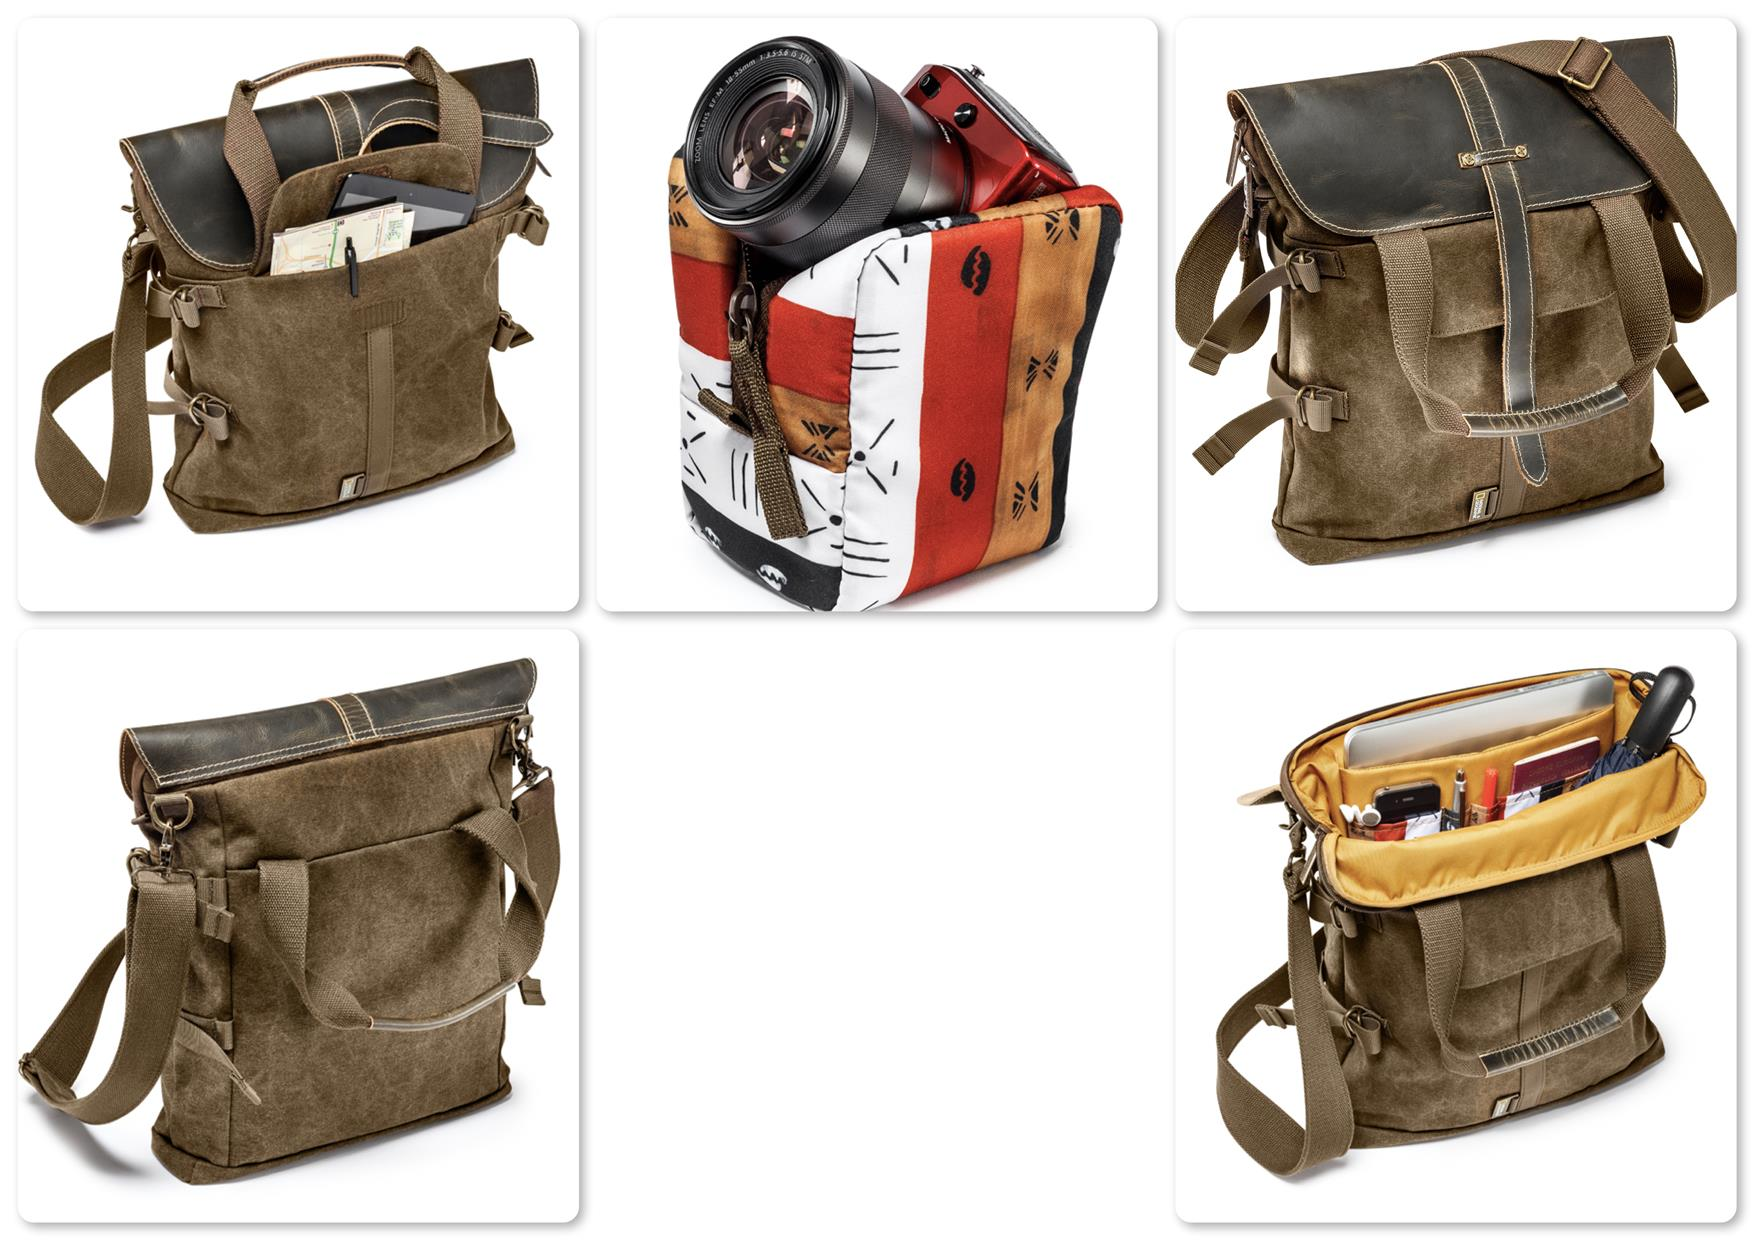 National Geographic NG A8121 Africa Medium Tote Bag with Small Pouch